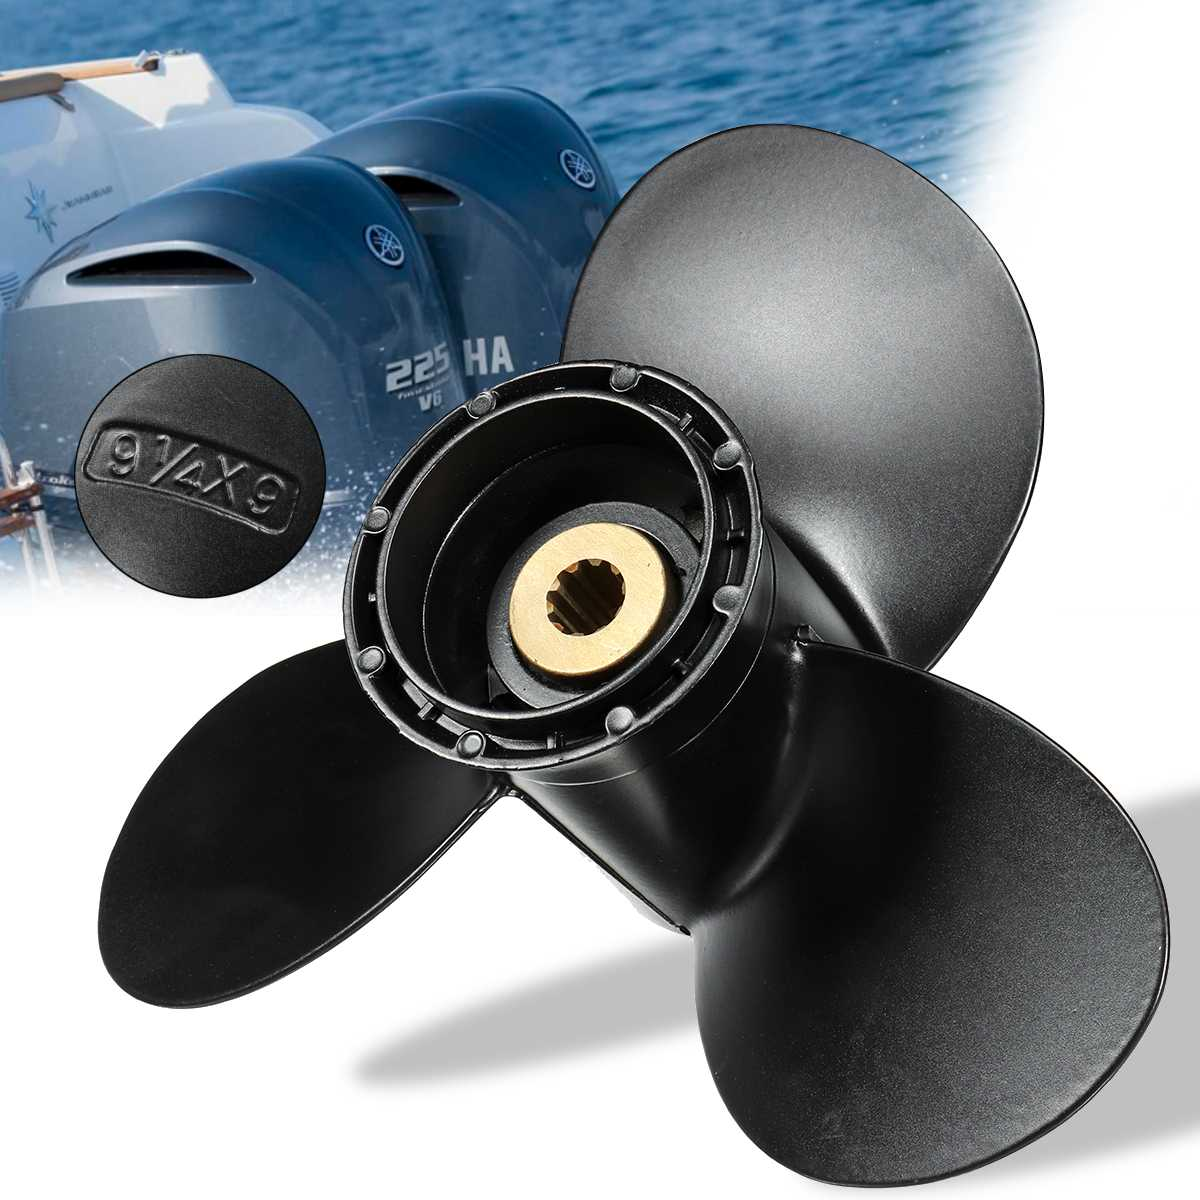 Outboard Propeller 58100-93723-019 Fit For Suzuki 8-20HP 9 1/4 x 9 Boat Aluminum Alloy 3 Blades R Rotation Black 10 Spline ToothOutboard Propeller 58100-93723-019 Fit For Suzuki 8-20HP 9 1/4 x 9 Boat Aluminum Alloy 3 Blades R Rotation Black 10 Spline Tooth